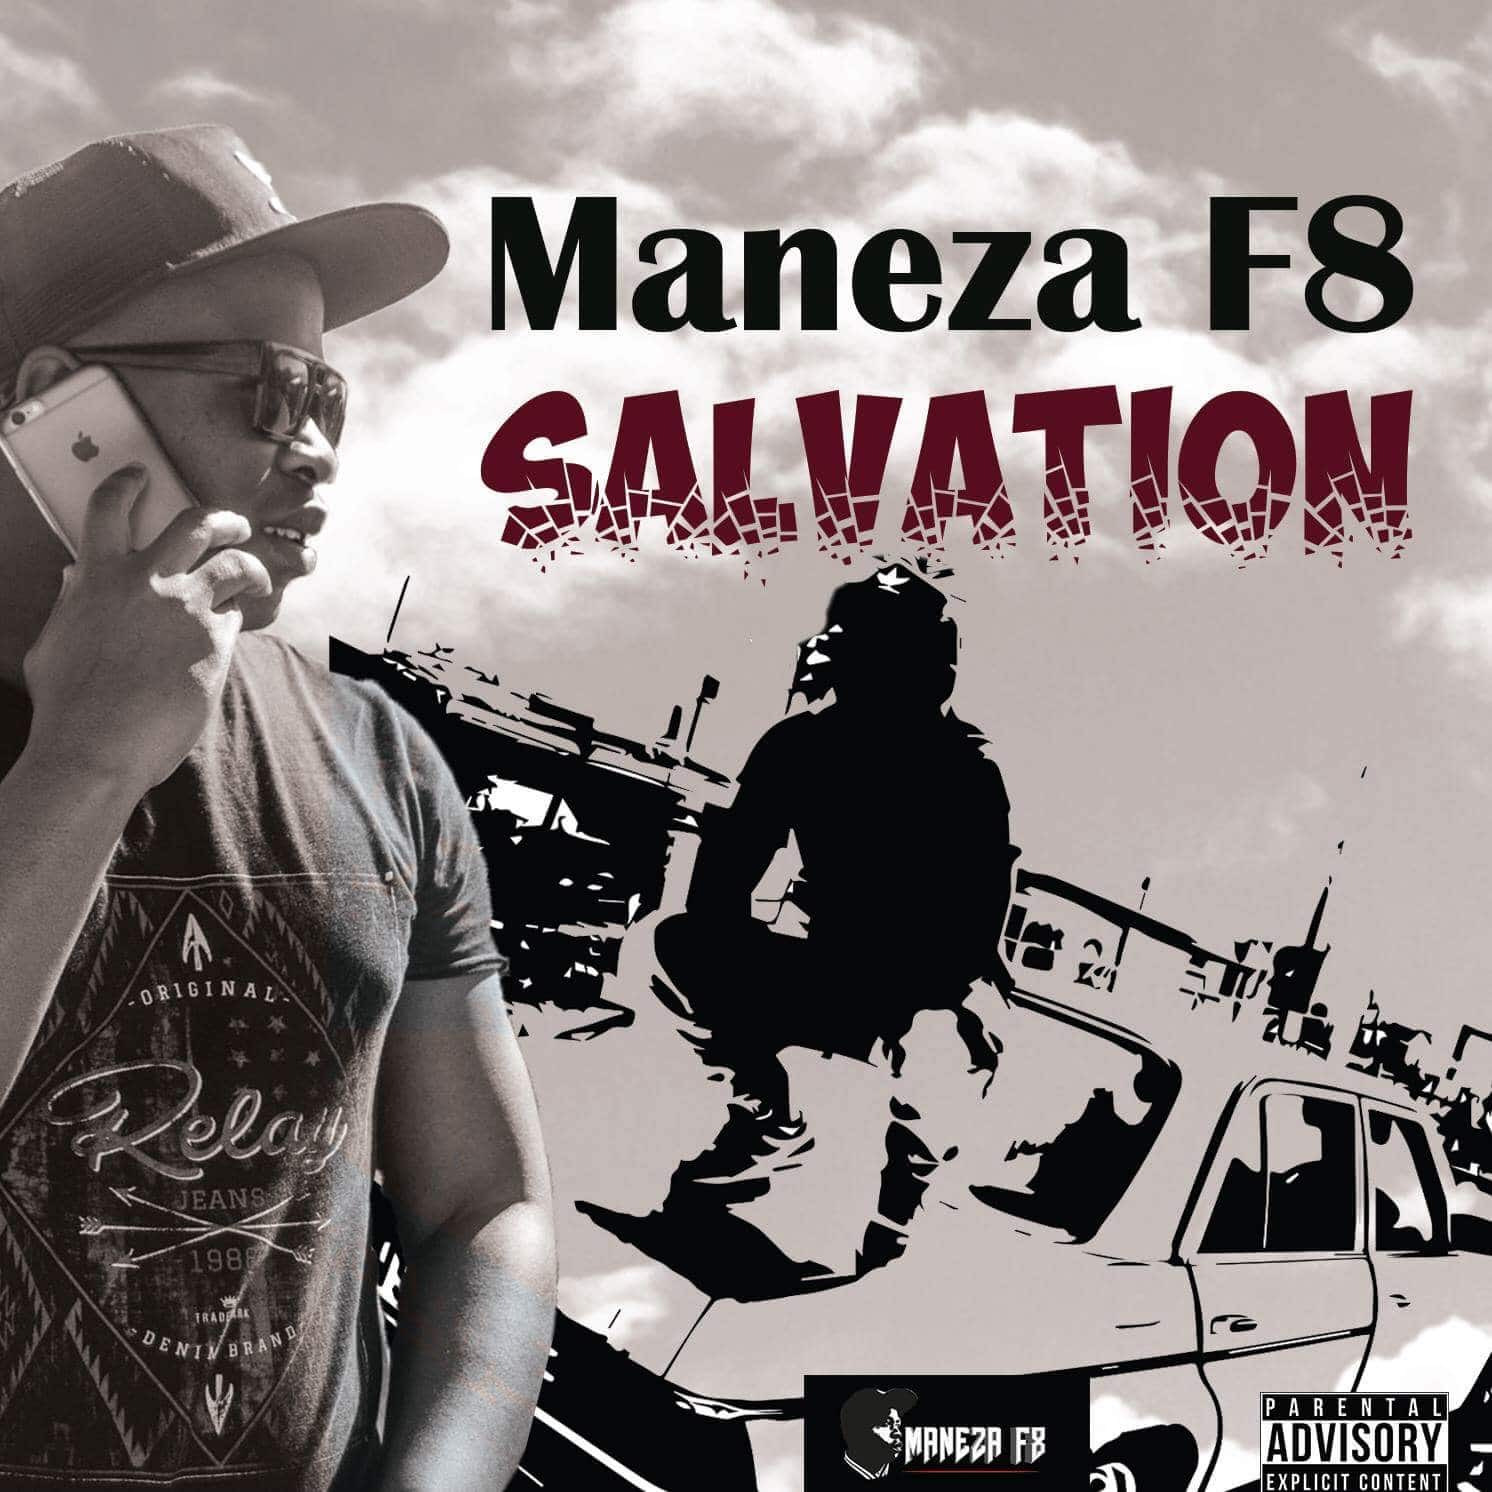 maneza f8 salvation album